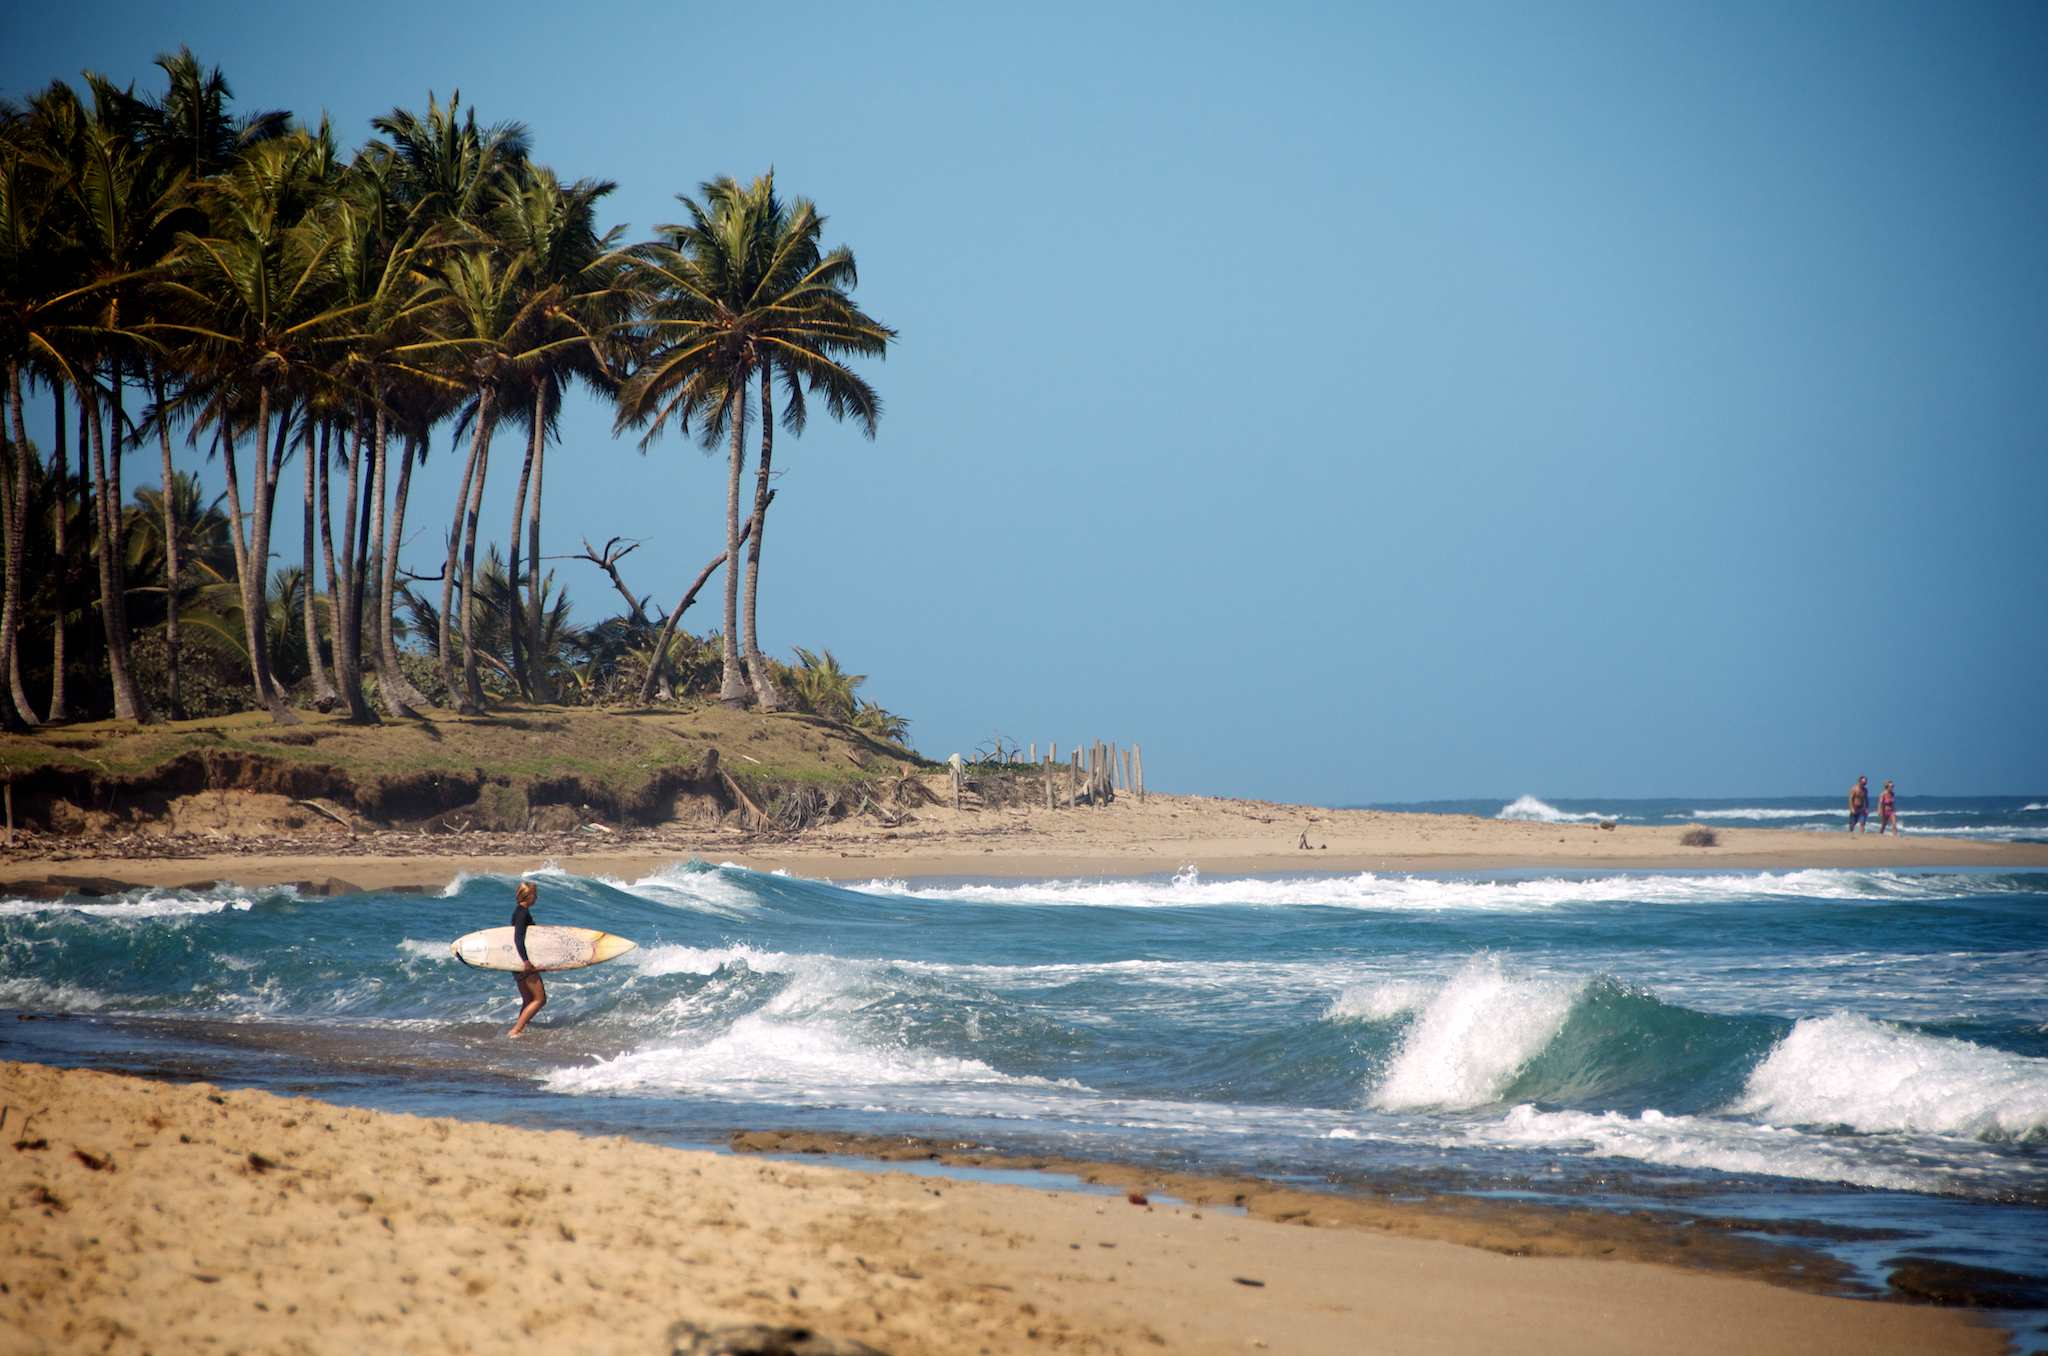 Dominican Republic surfing, North shore